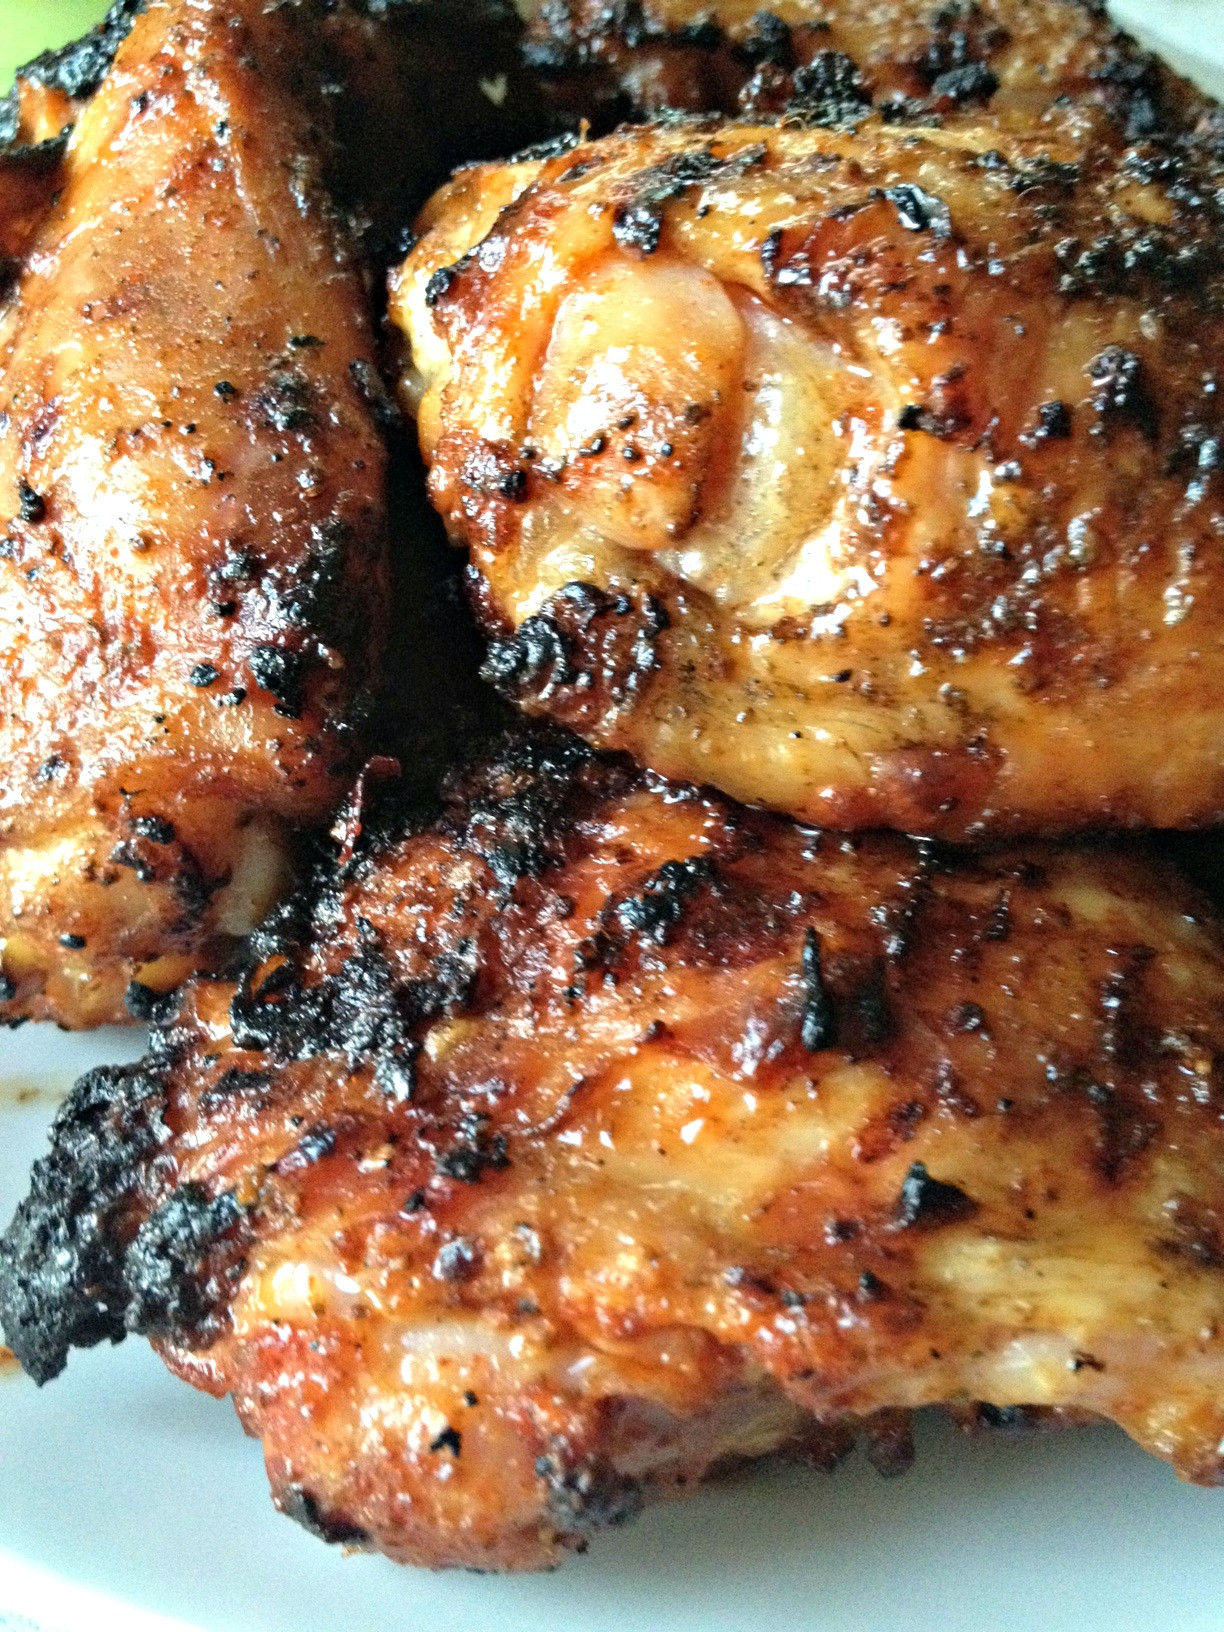 Grilling Chicken Thighs On Gas Grill  Pepper licious Grilled Chicken Thighs